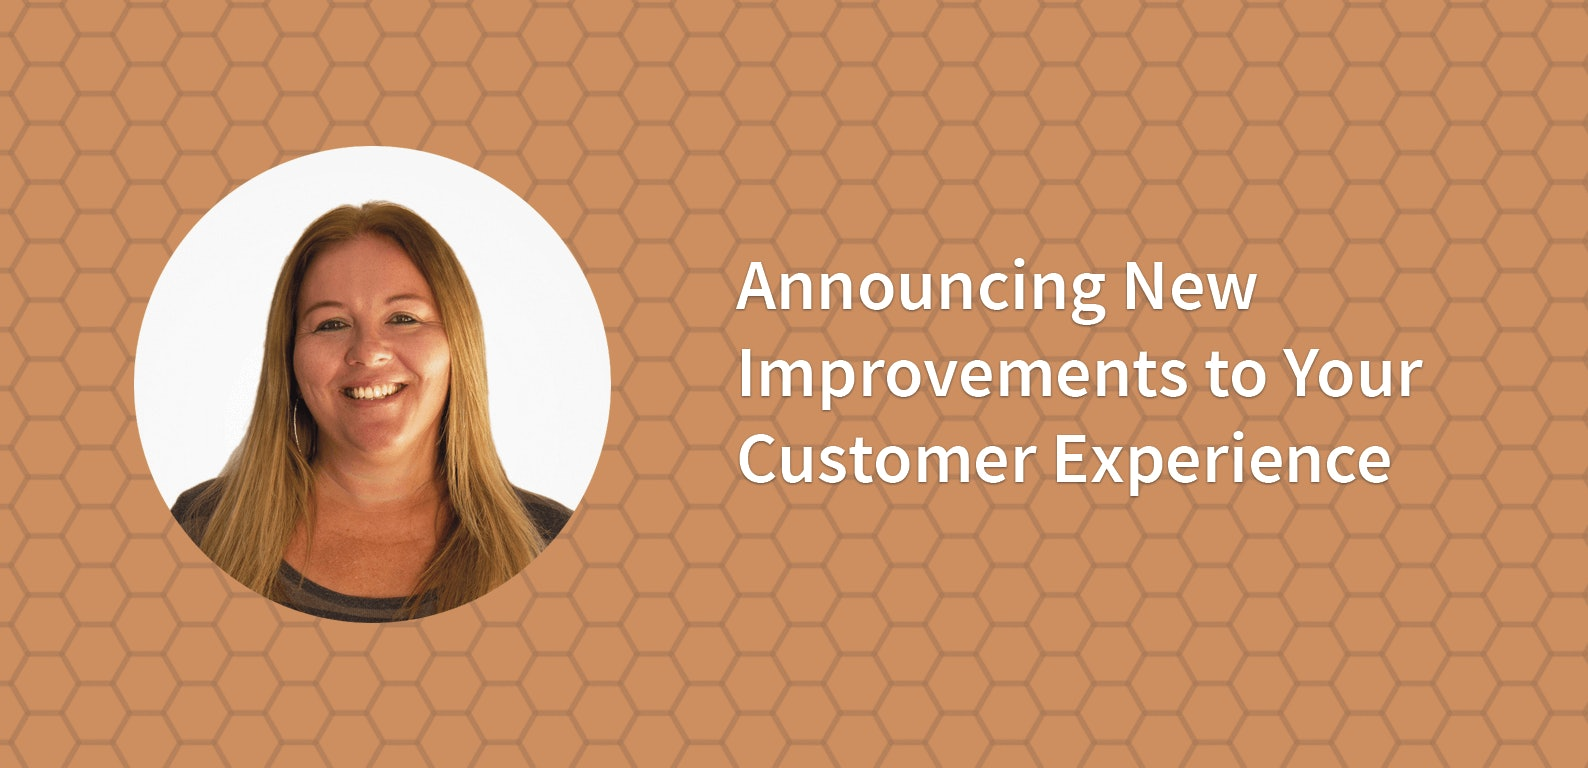 Announcing New Improvements to Your Customer Experience